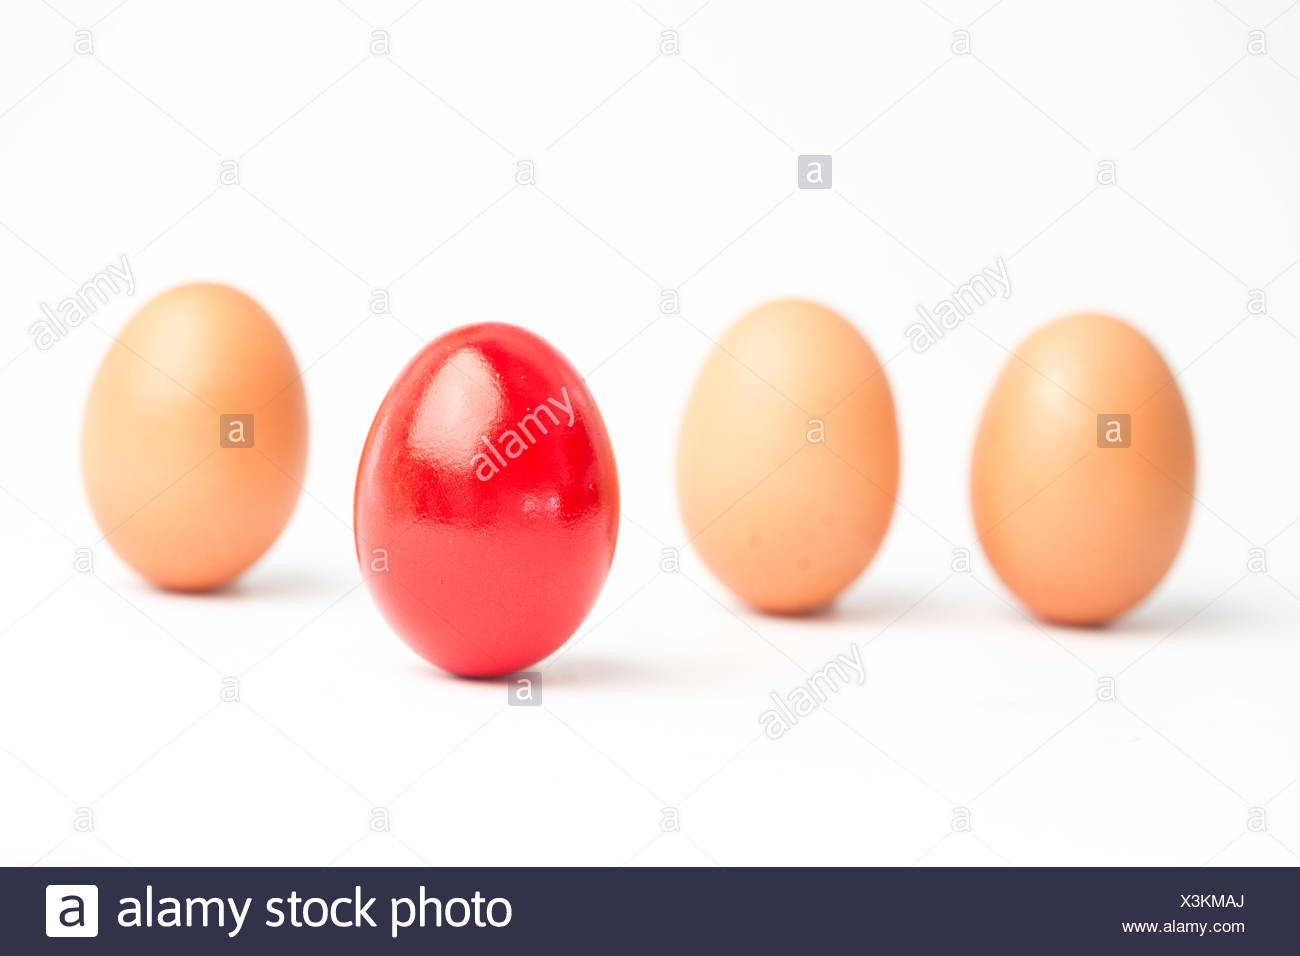 Four eggs in a row with one red one standing out on white background - Stock Image